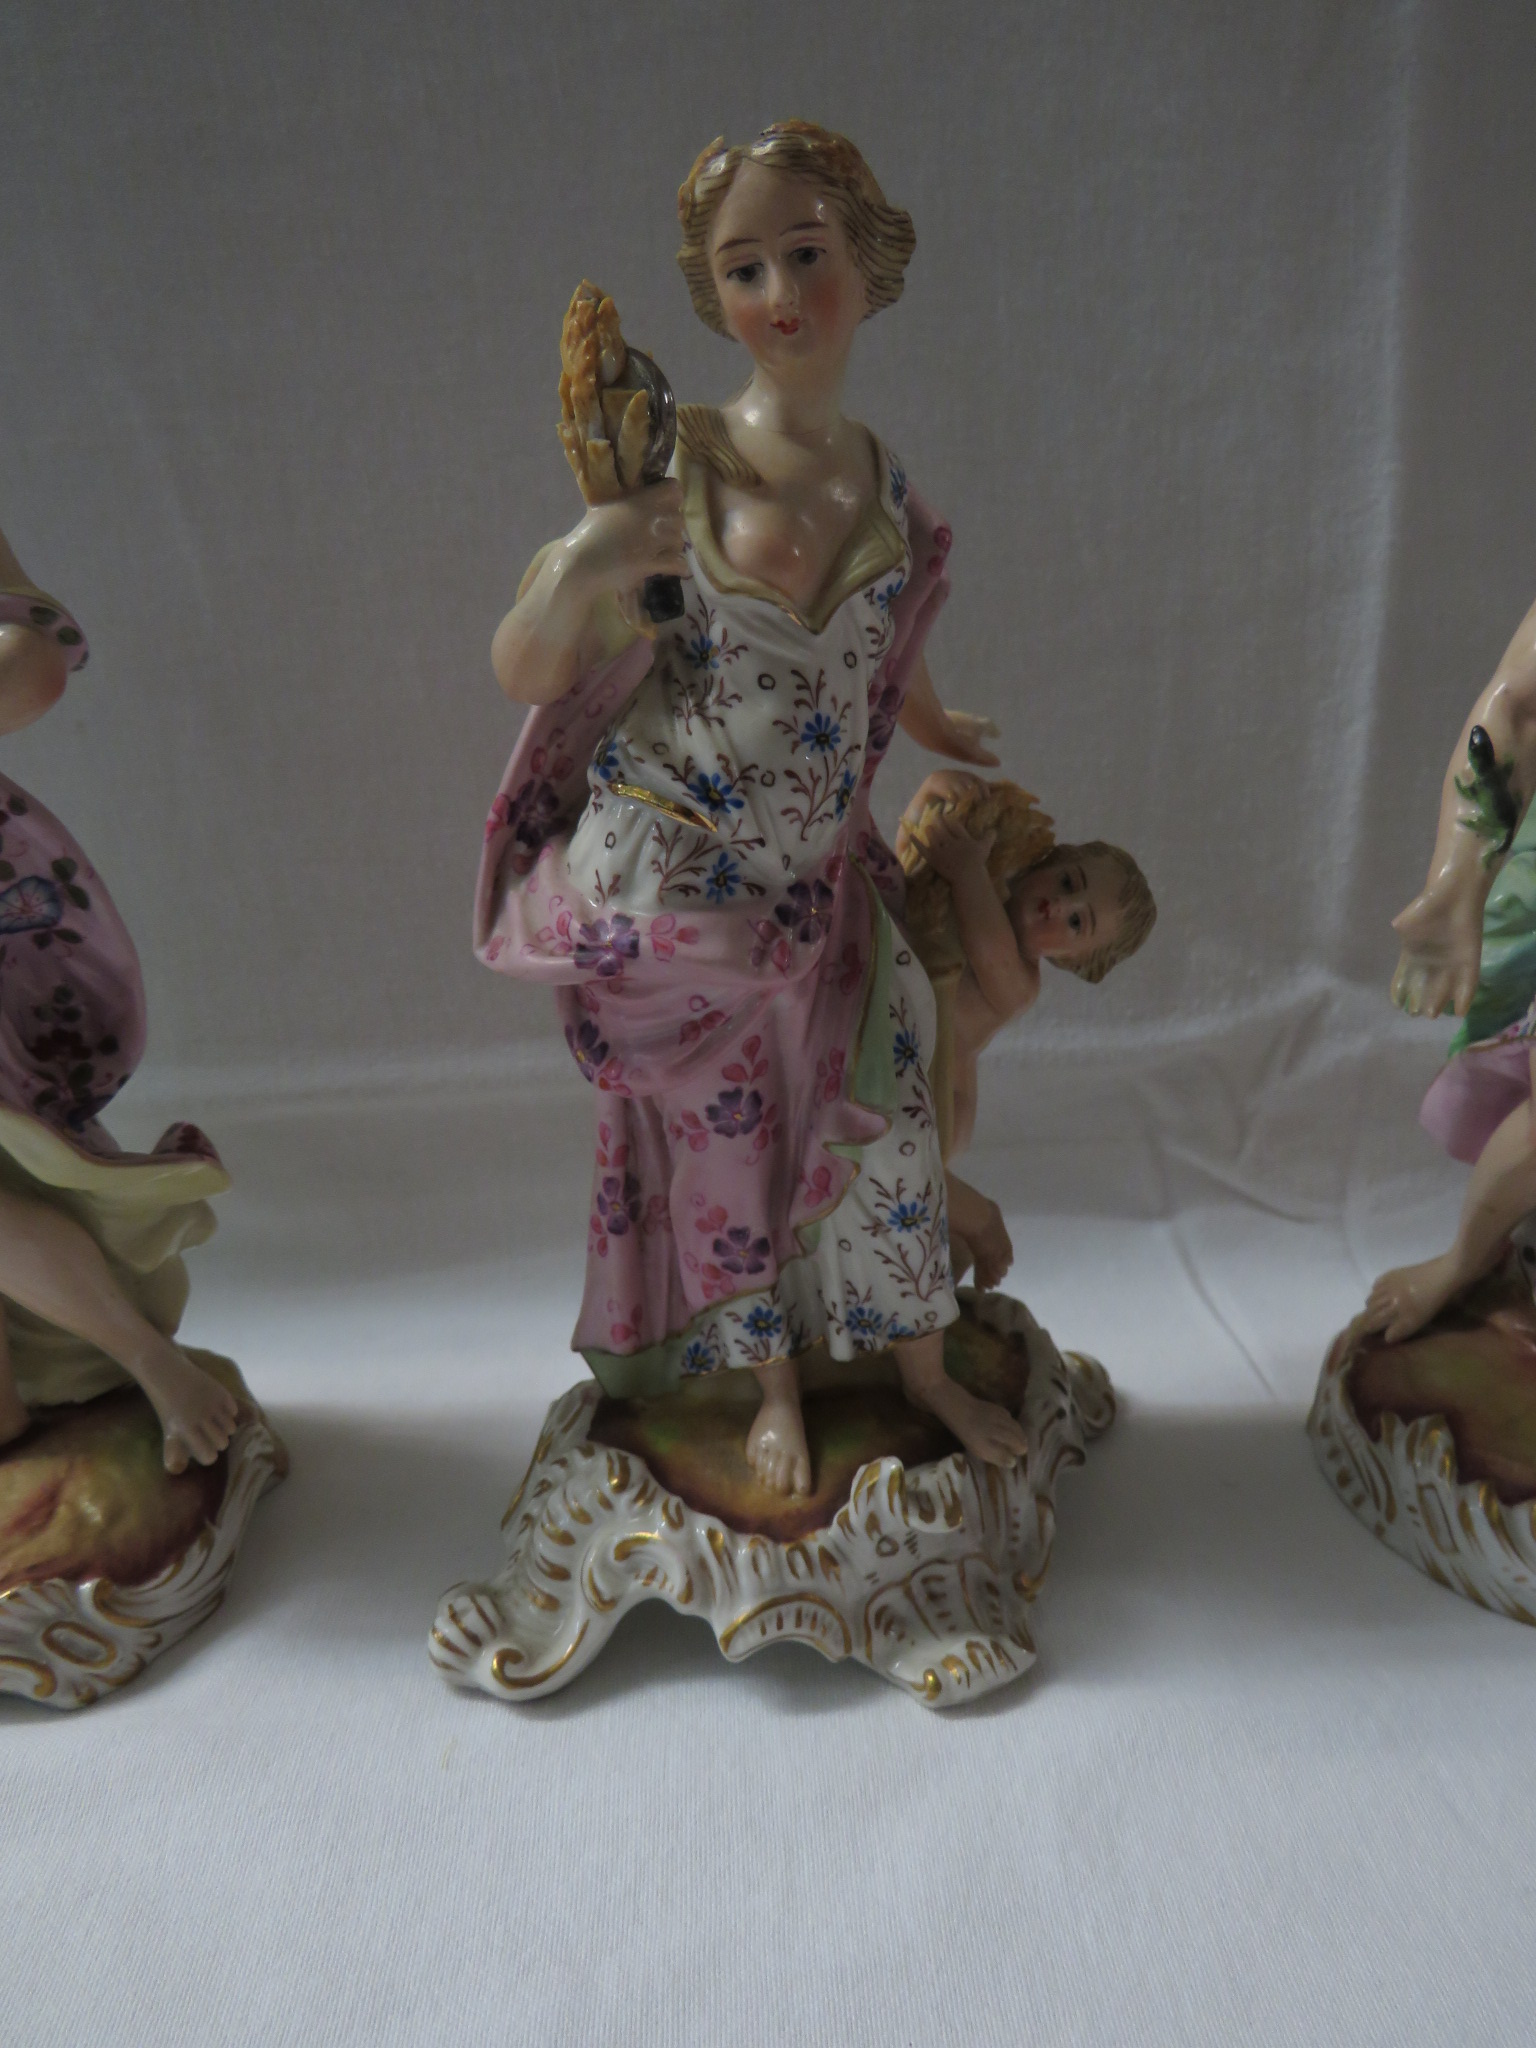 Lot 12 - A matched group of three porcelain Classical and allegorical figures representing Juno, Ceres and